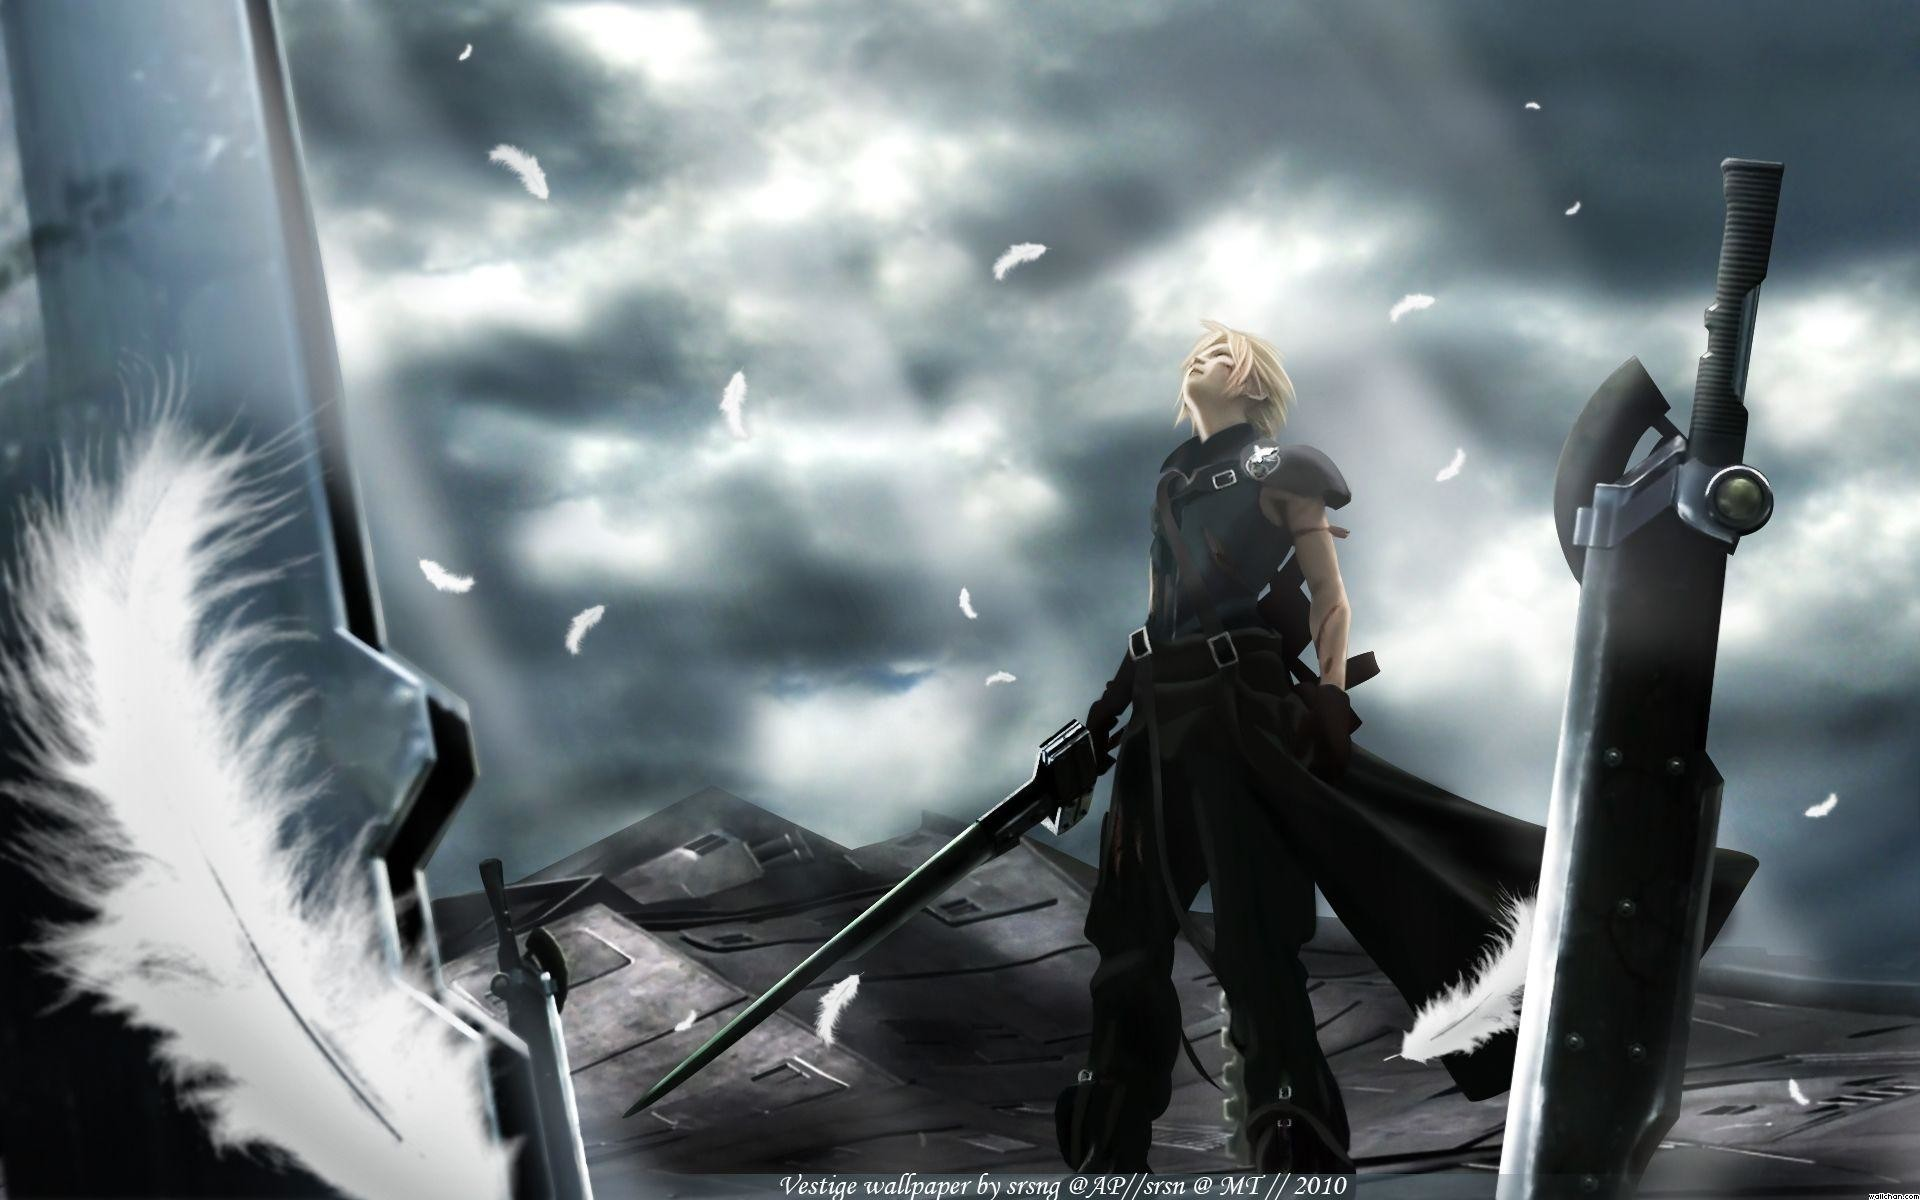 Cloud Ff7 Wallpaper 1920x1080 65 Pictures